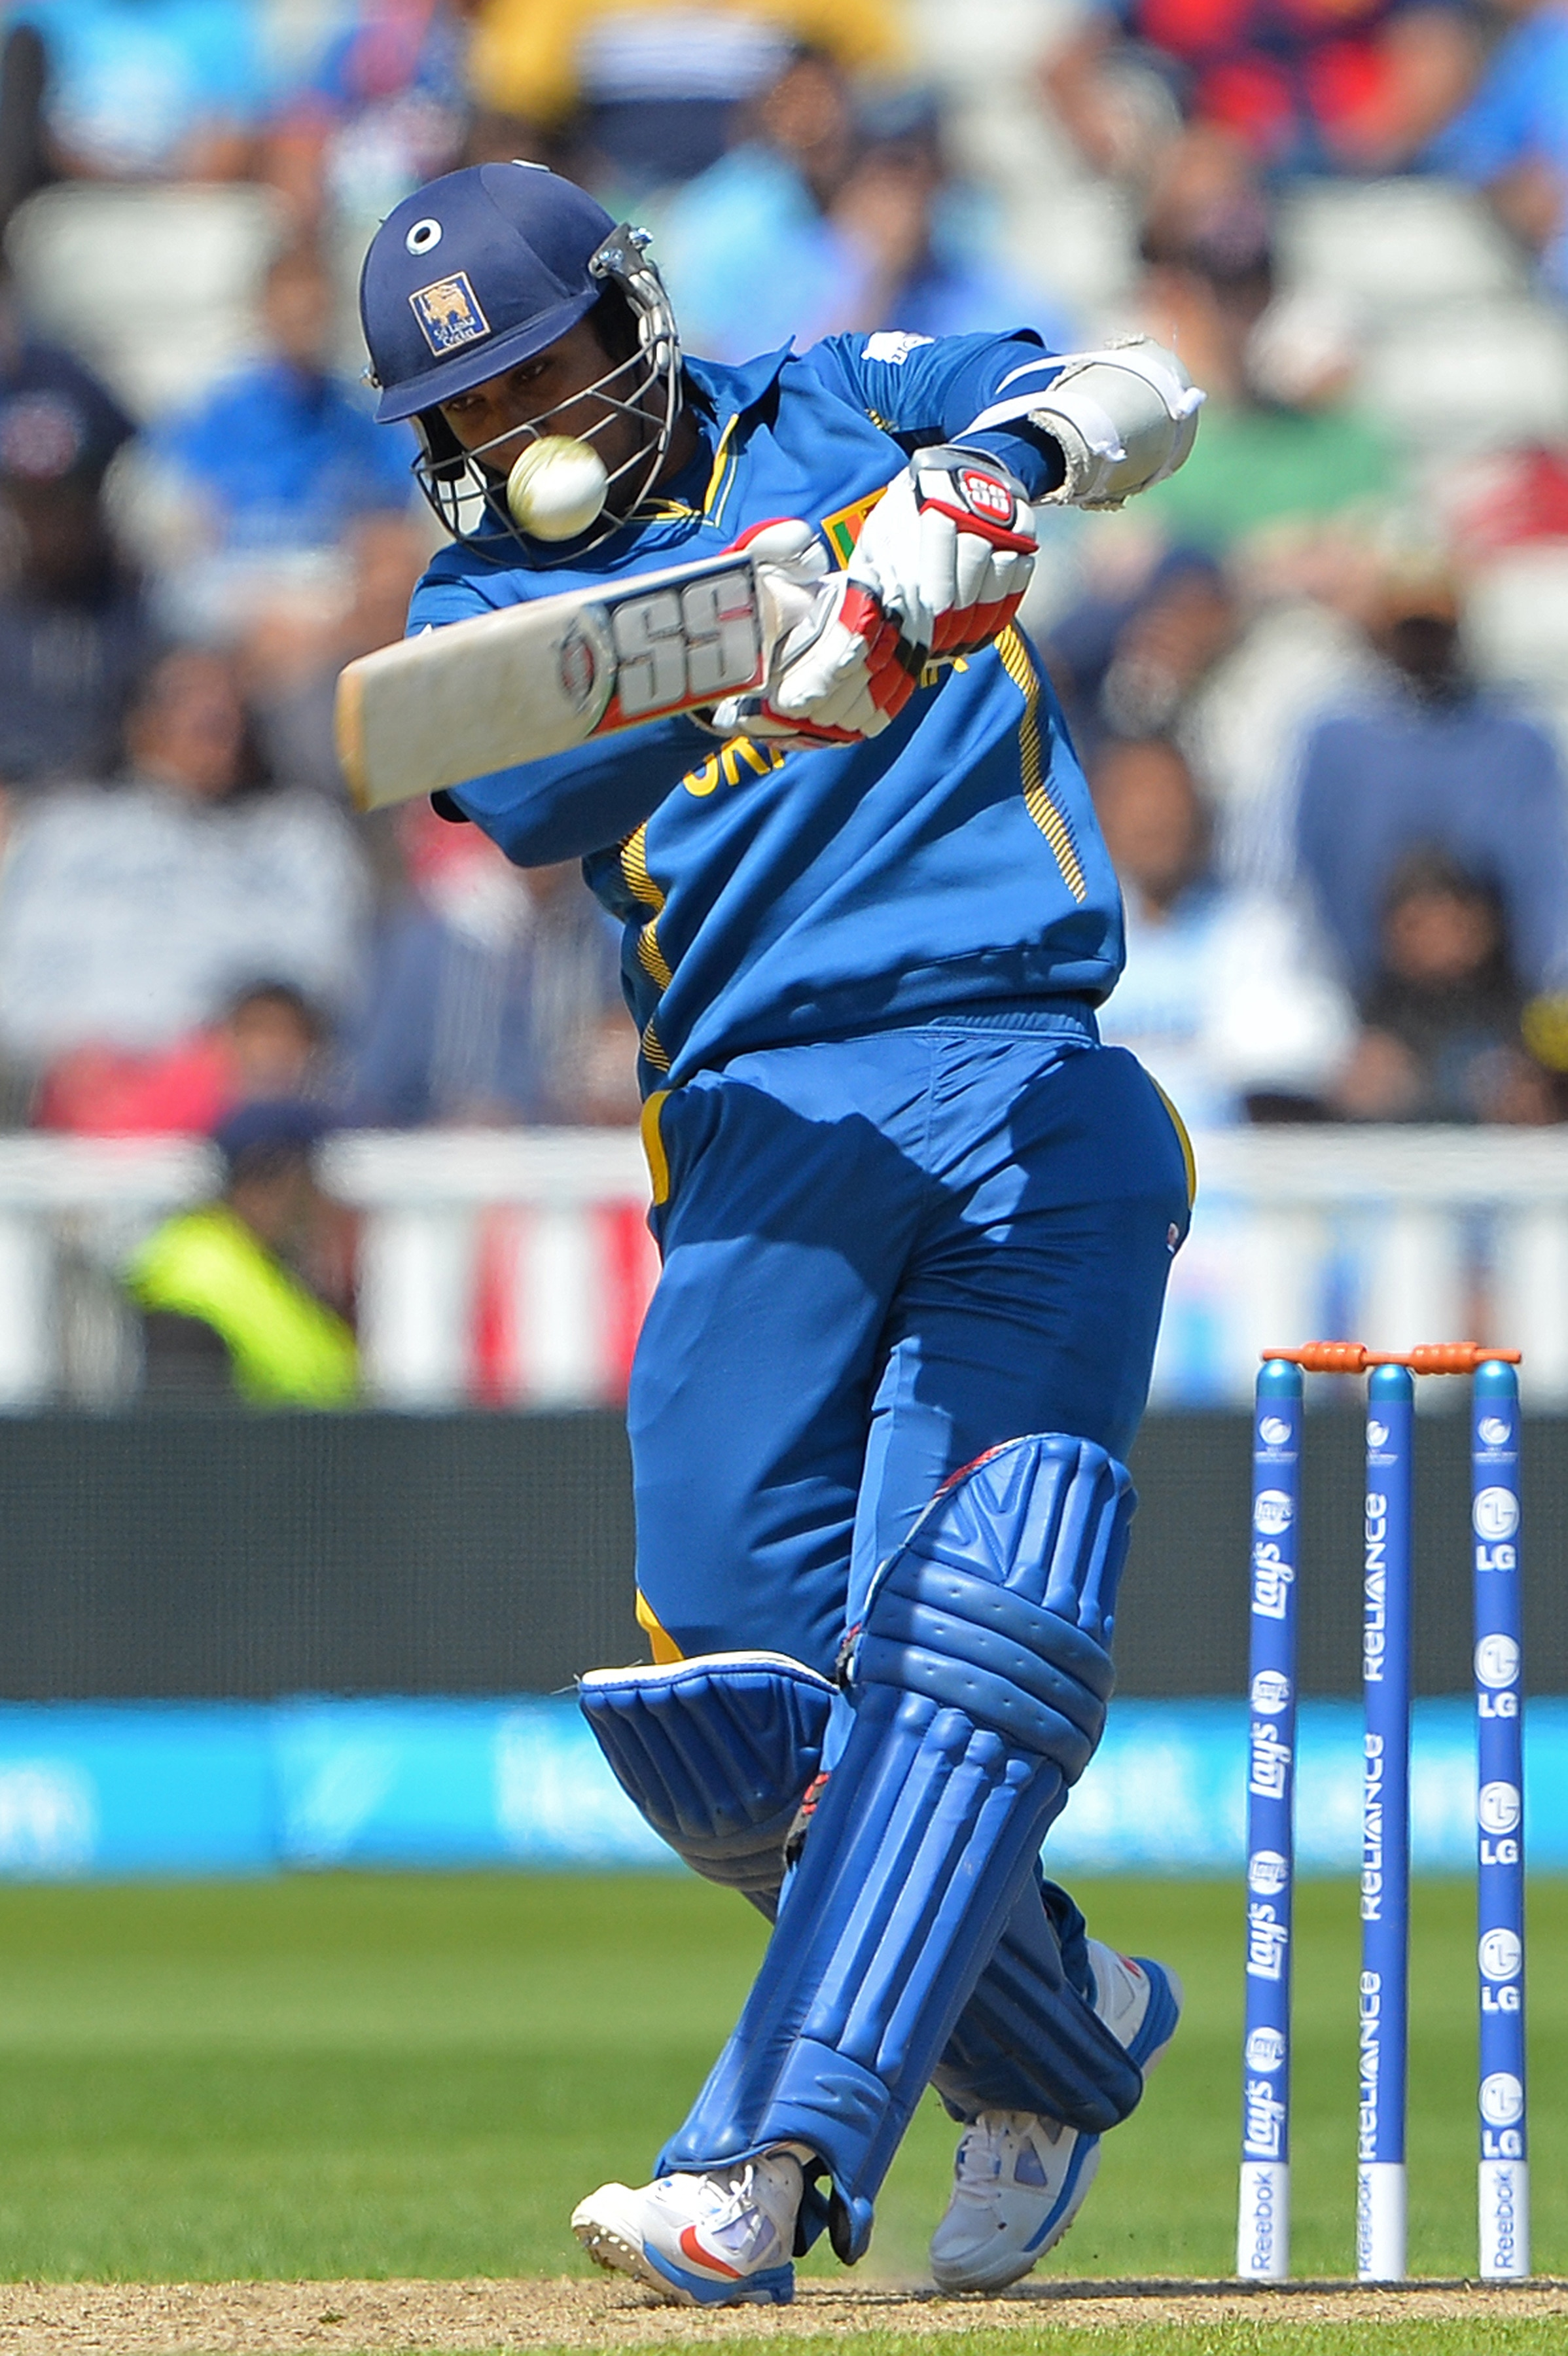 Dinesh Chandimal hit some crucial blows towards the end of the Sri Lanka innings to make sure his side goes well past the 300-run mark. As it turned out 333 for 3 was not enough in the end.